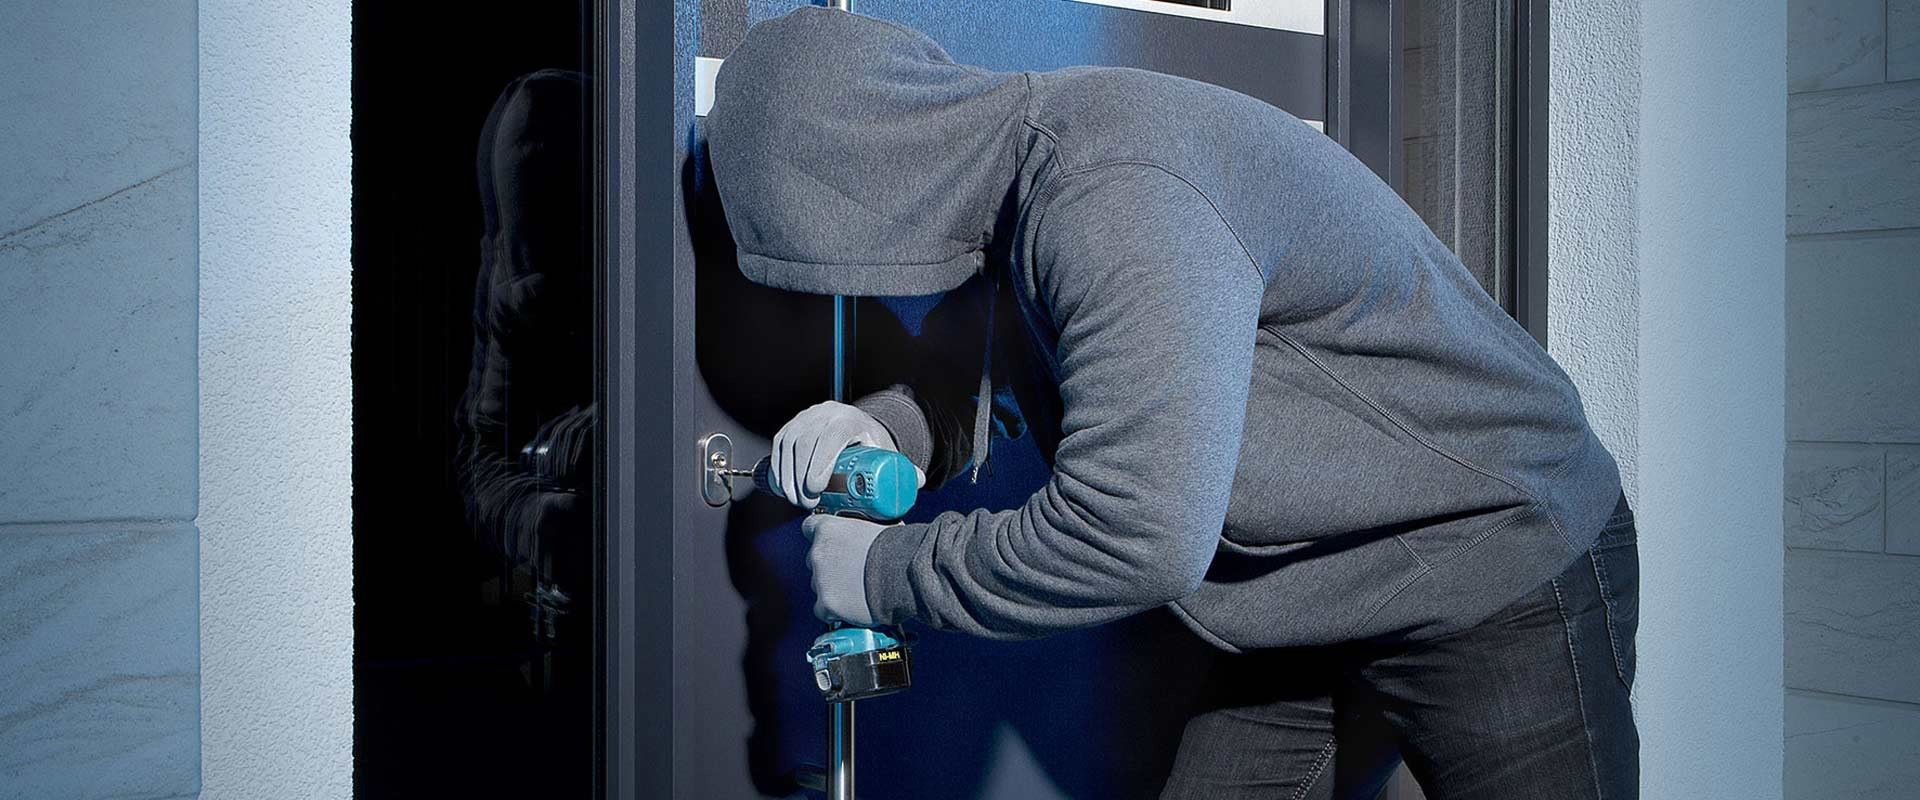 Homeowners Protection against burglary